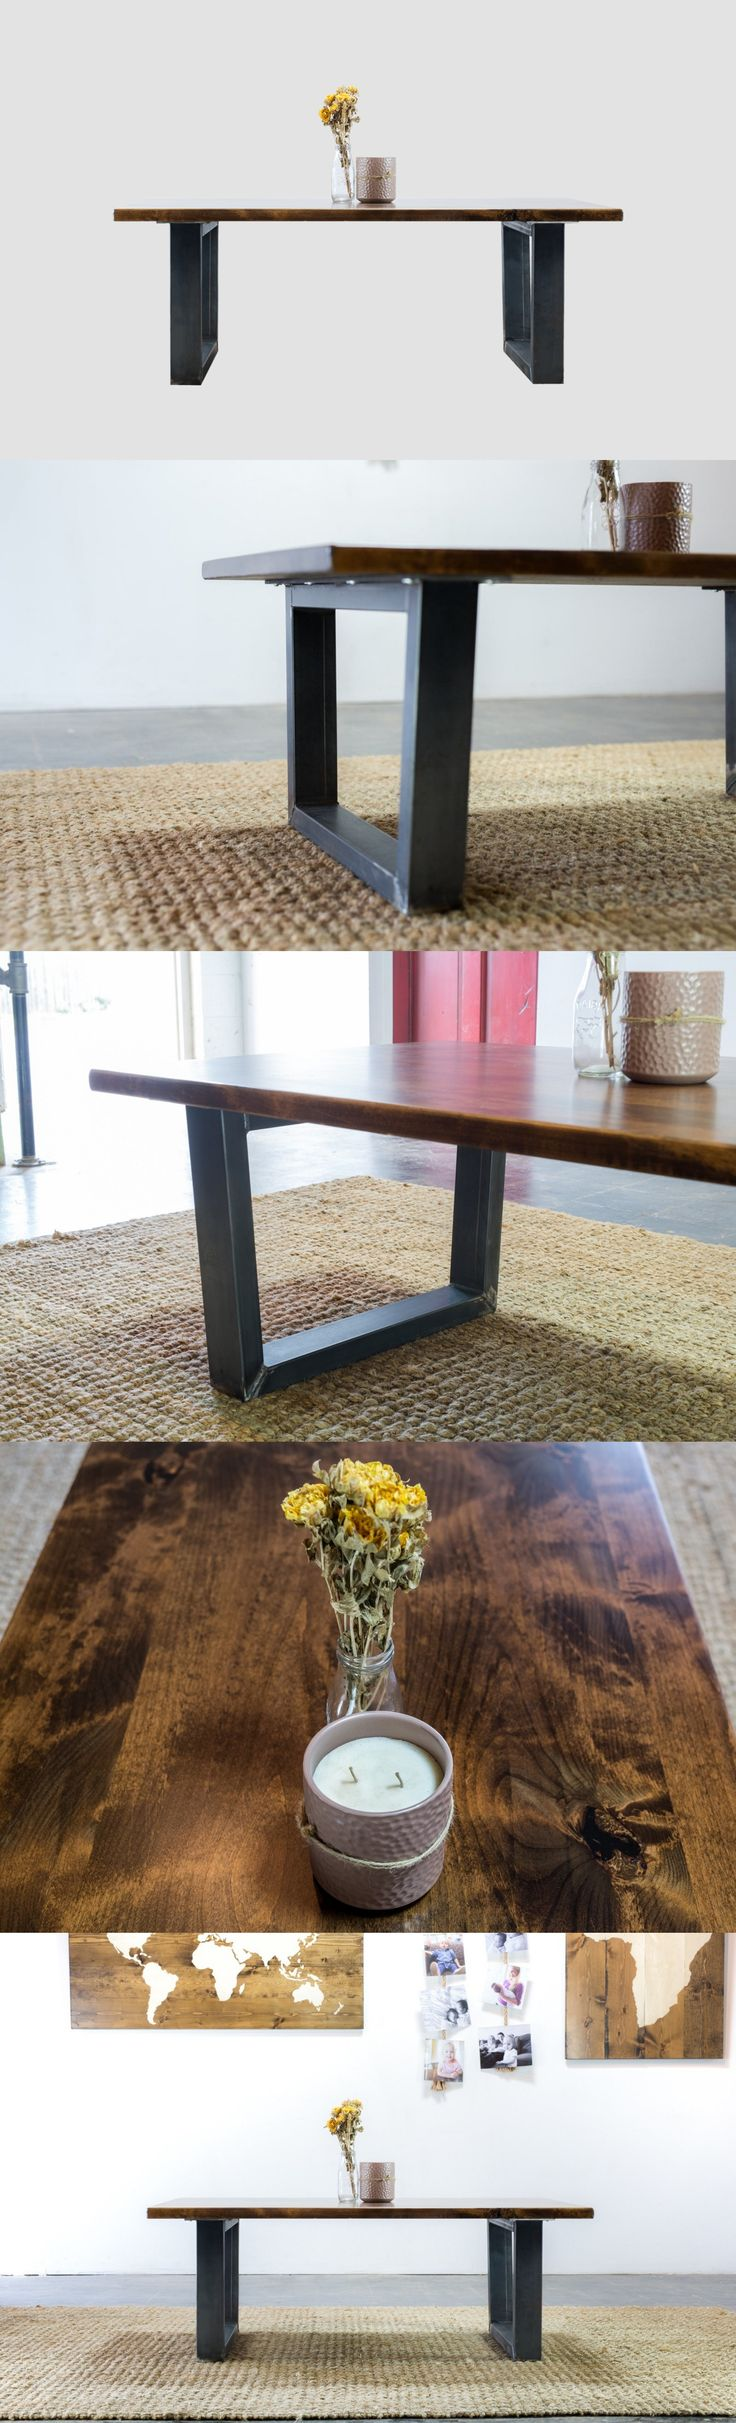 Style Coffee Table 17 Best Ideas About Industrial Style Coffee Table On Pinterest